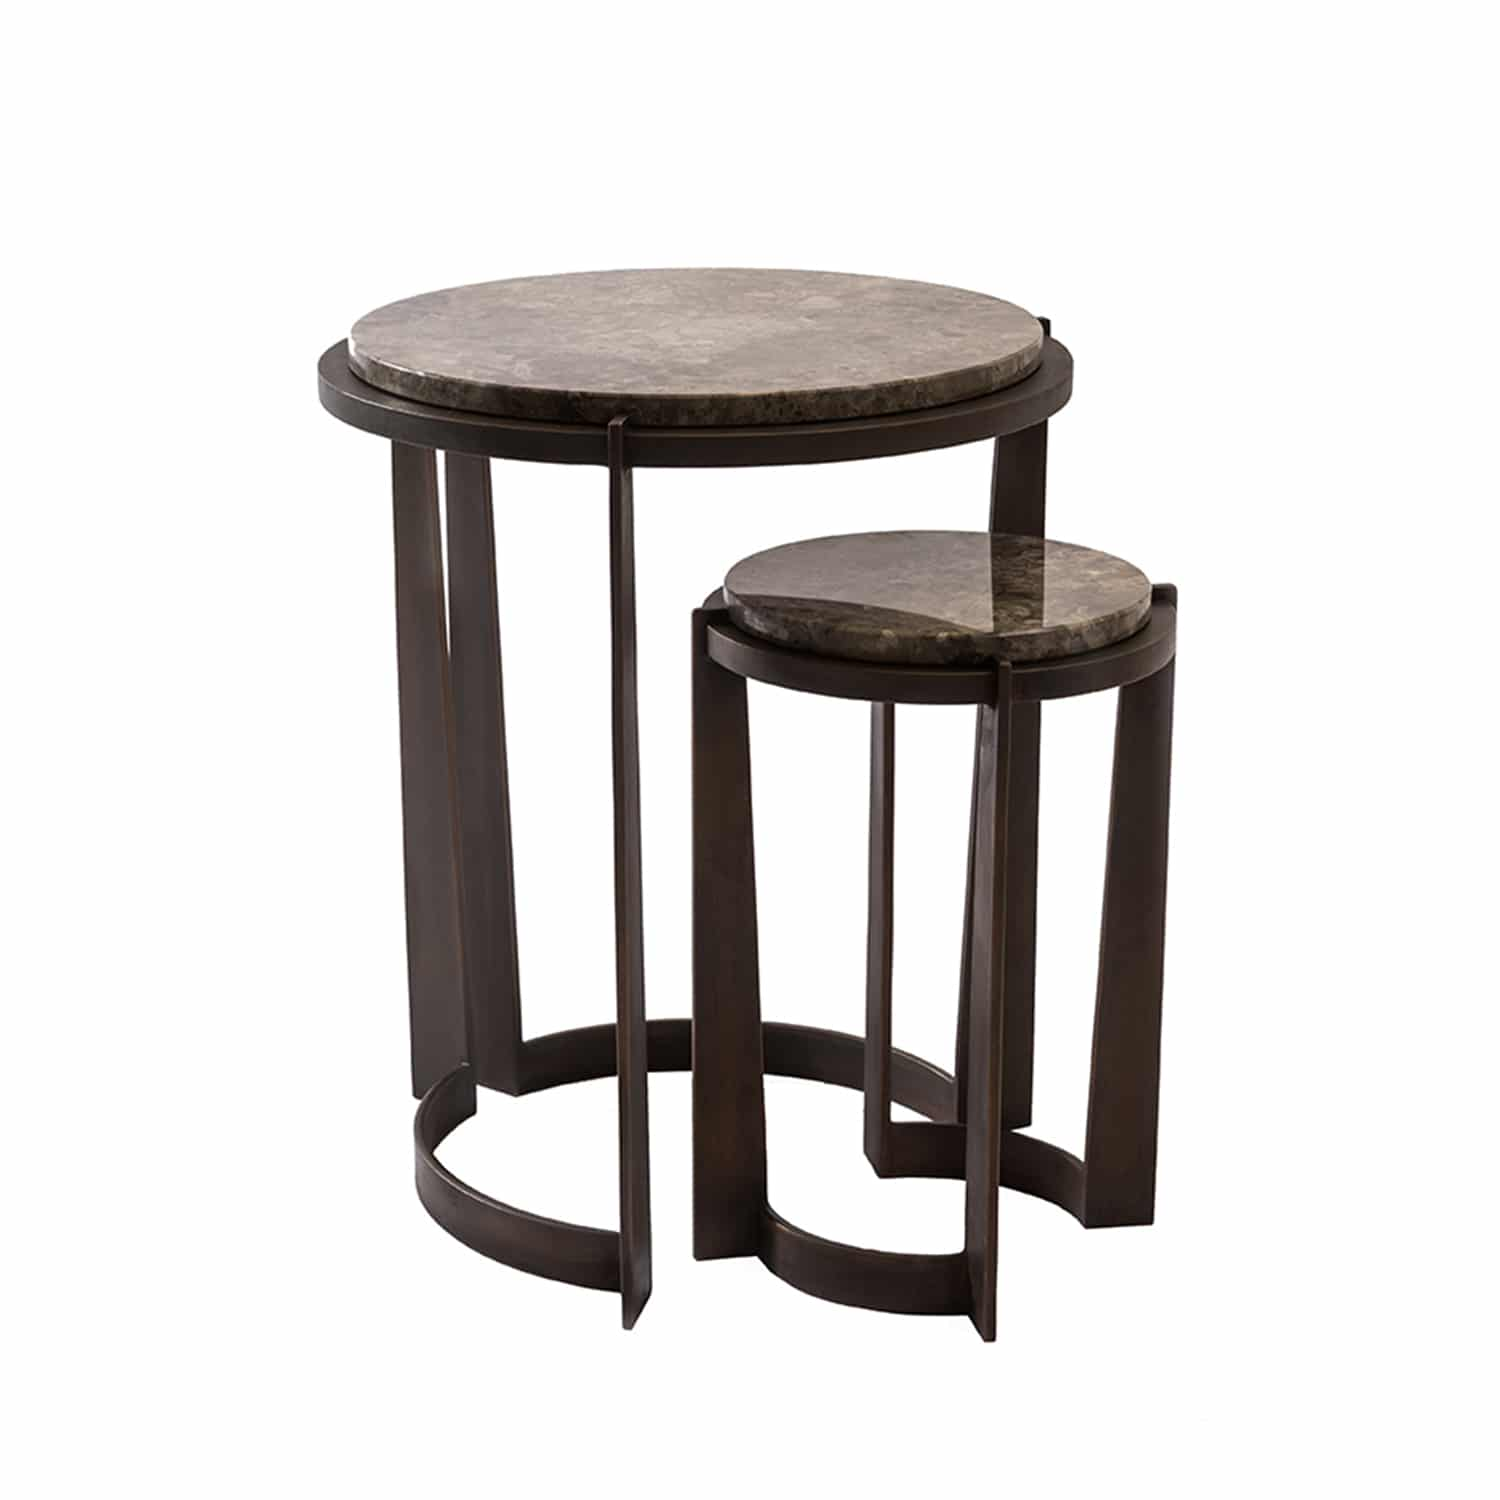 Luxury handcrafted Marble & Bronze Nest of Side Tables